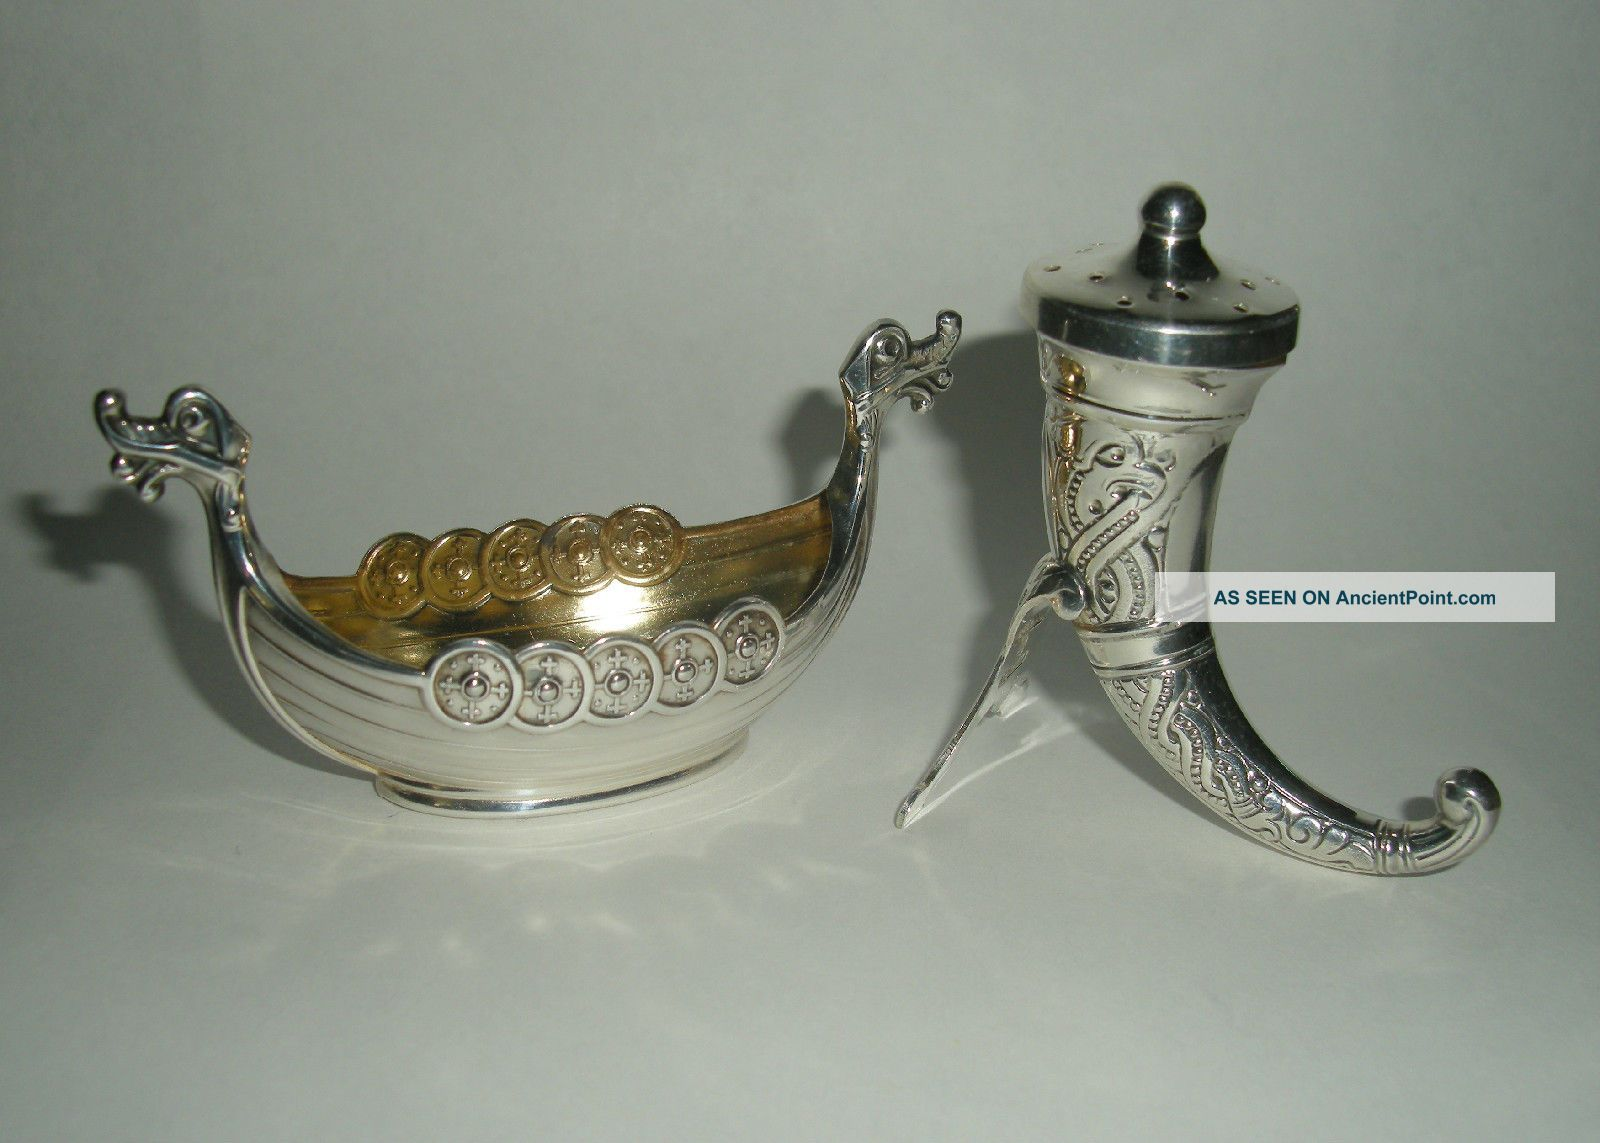 Vintage Theodor Olsens Eftf Viking Horn & Ship Sterling Salt Pepper Norway Scandinavia photo